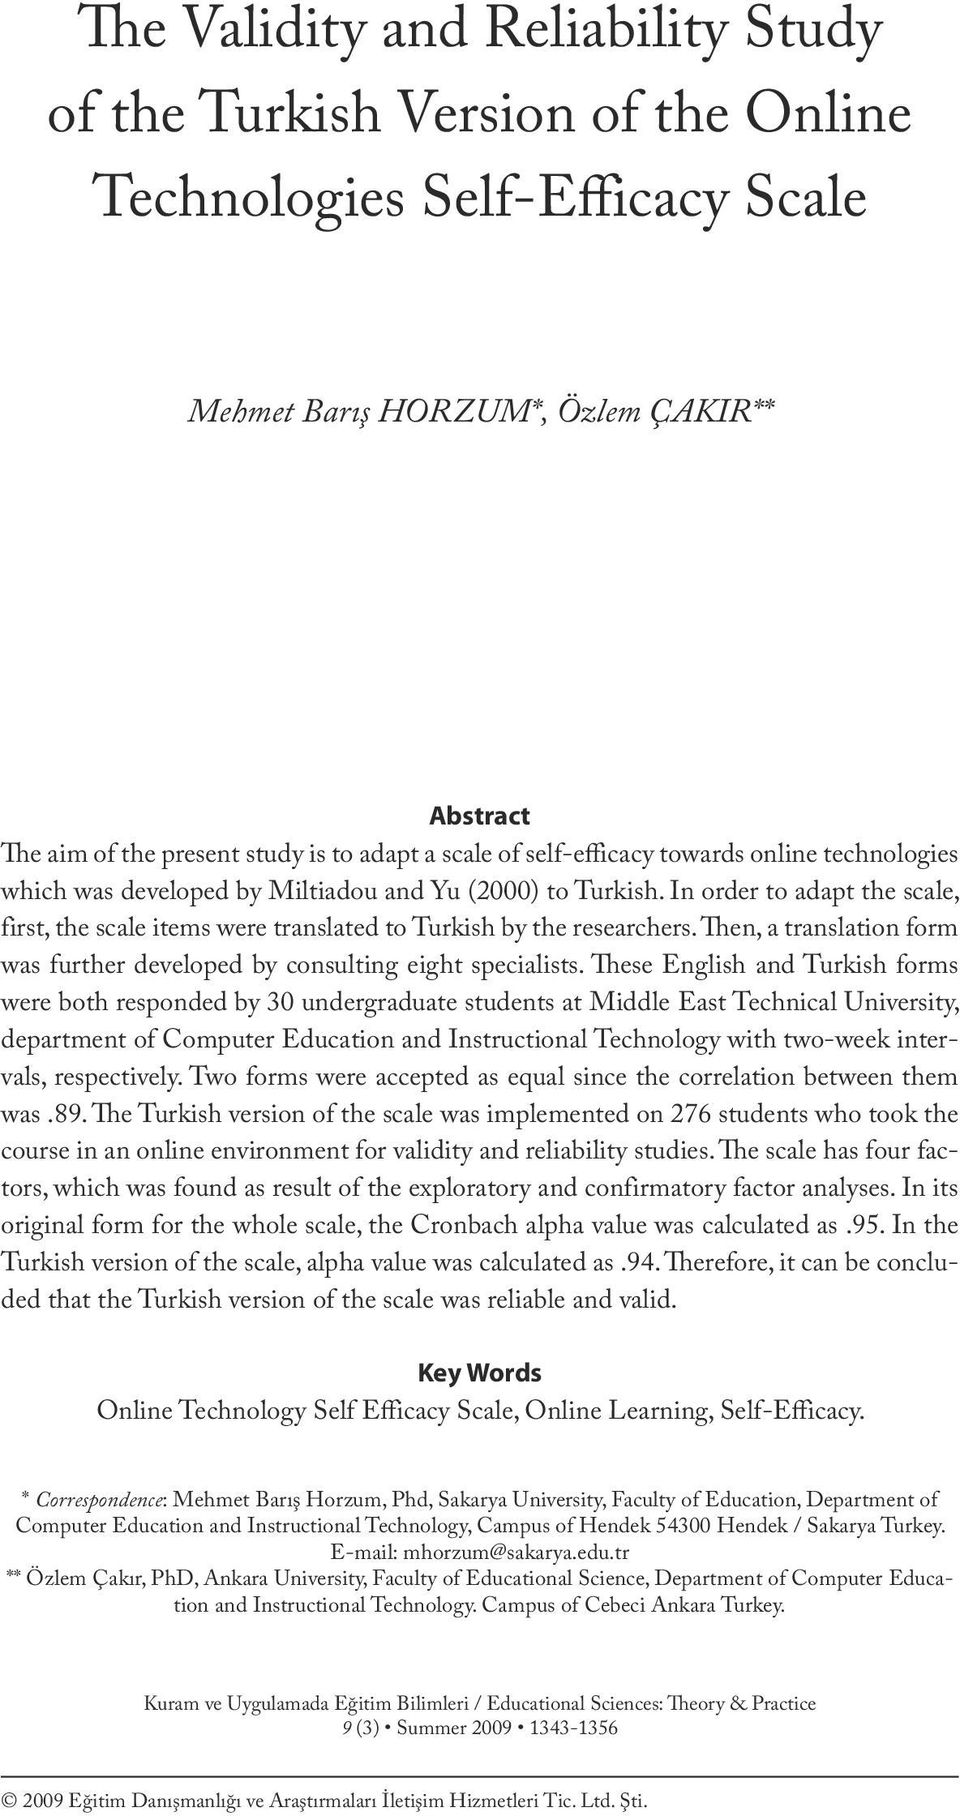 a scale of self-efficacy towards online technologies which was developed by Miltiadou and Yu (2000) to Turkish.